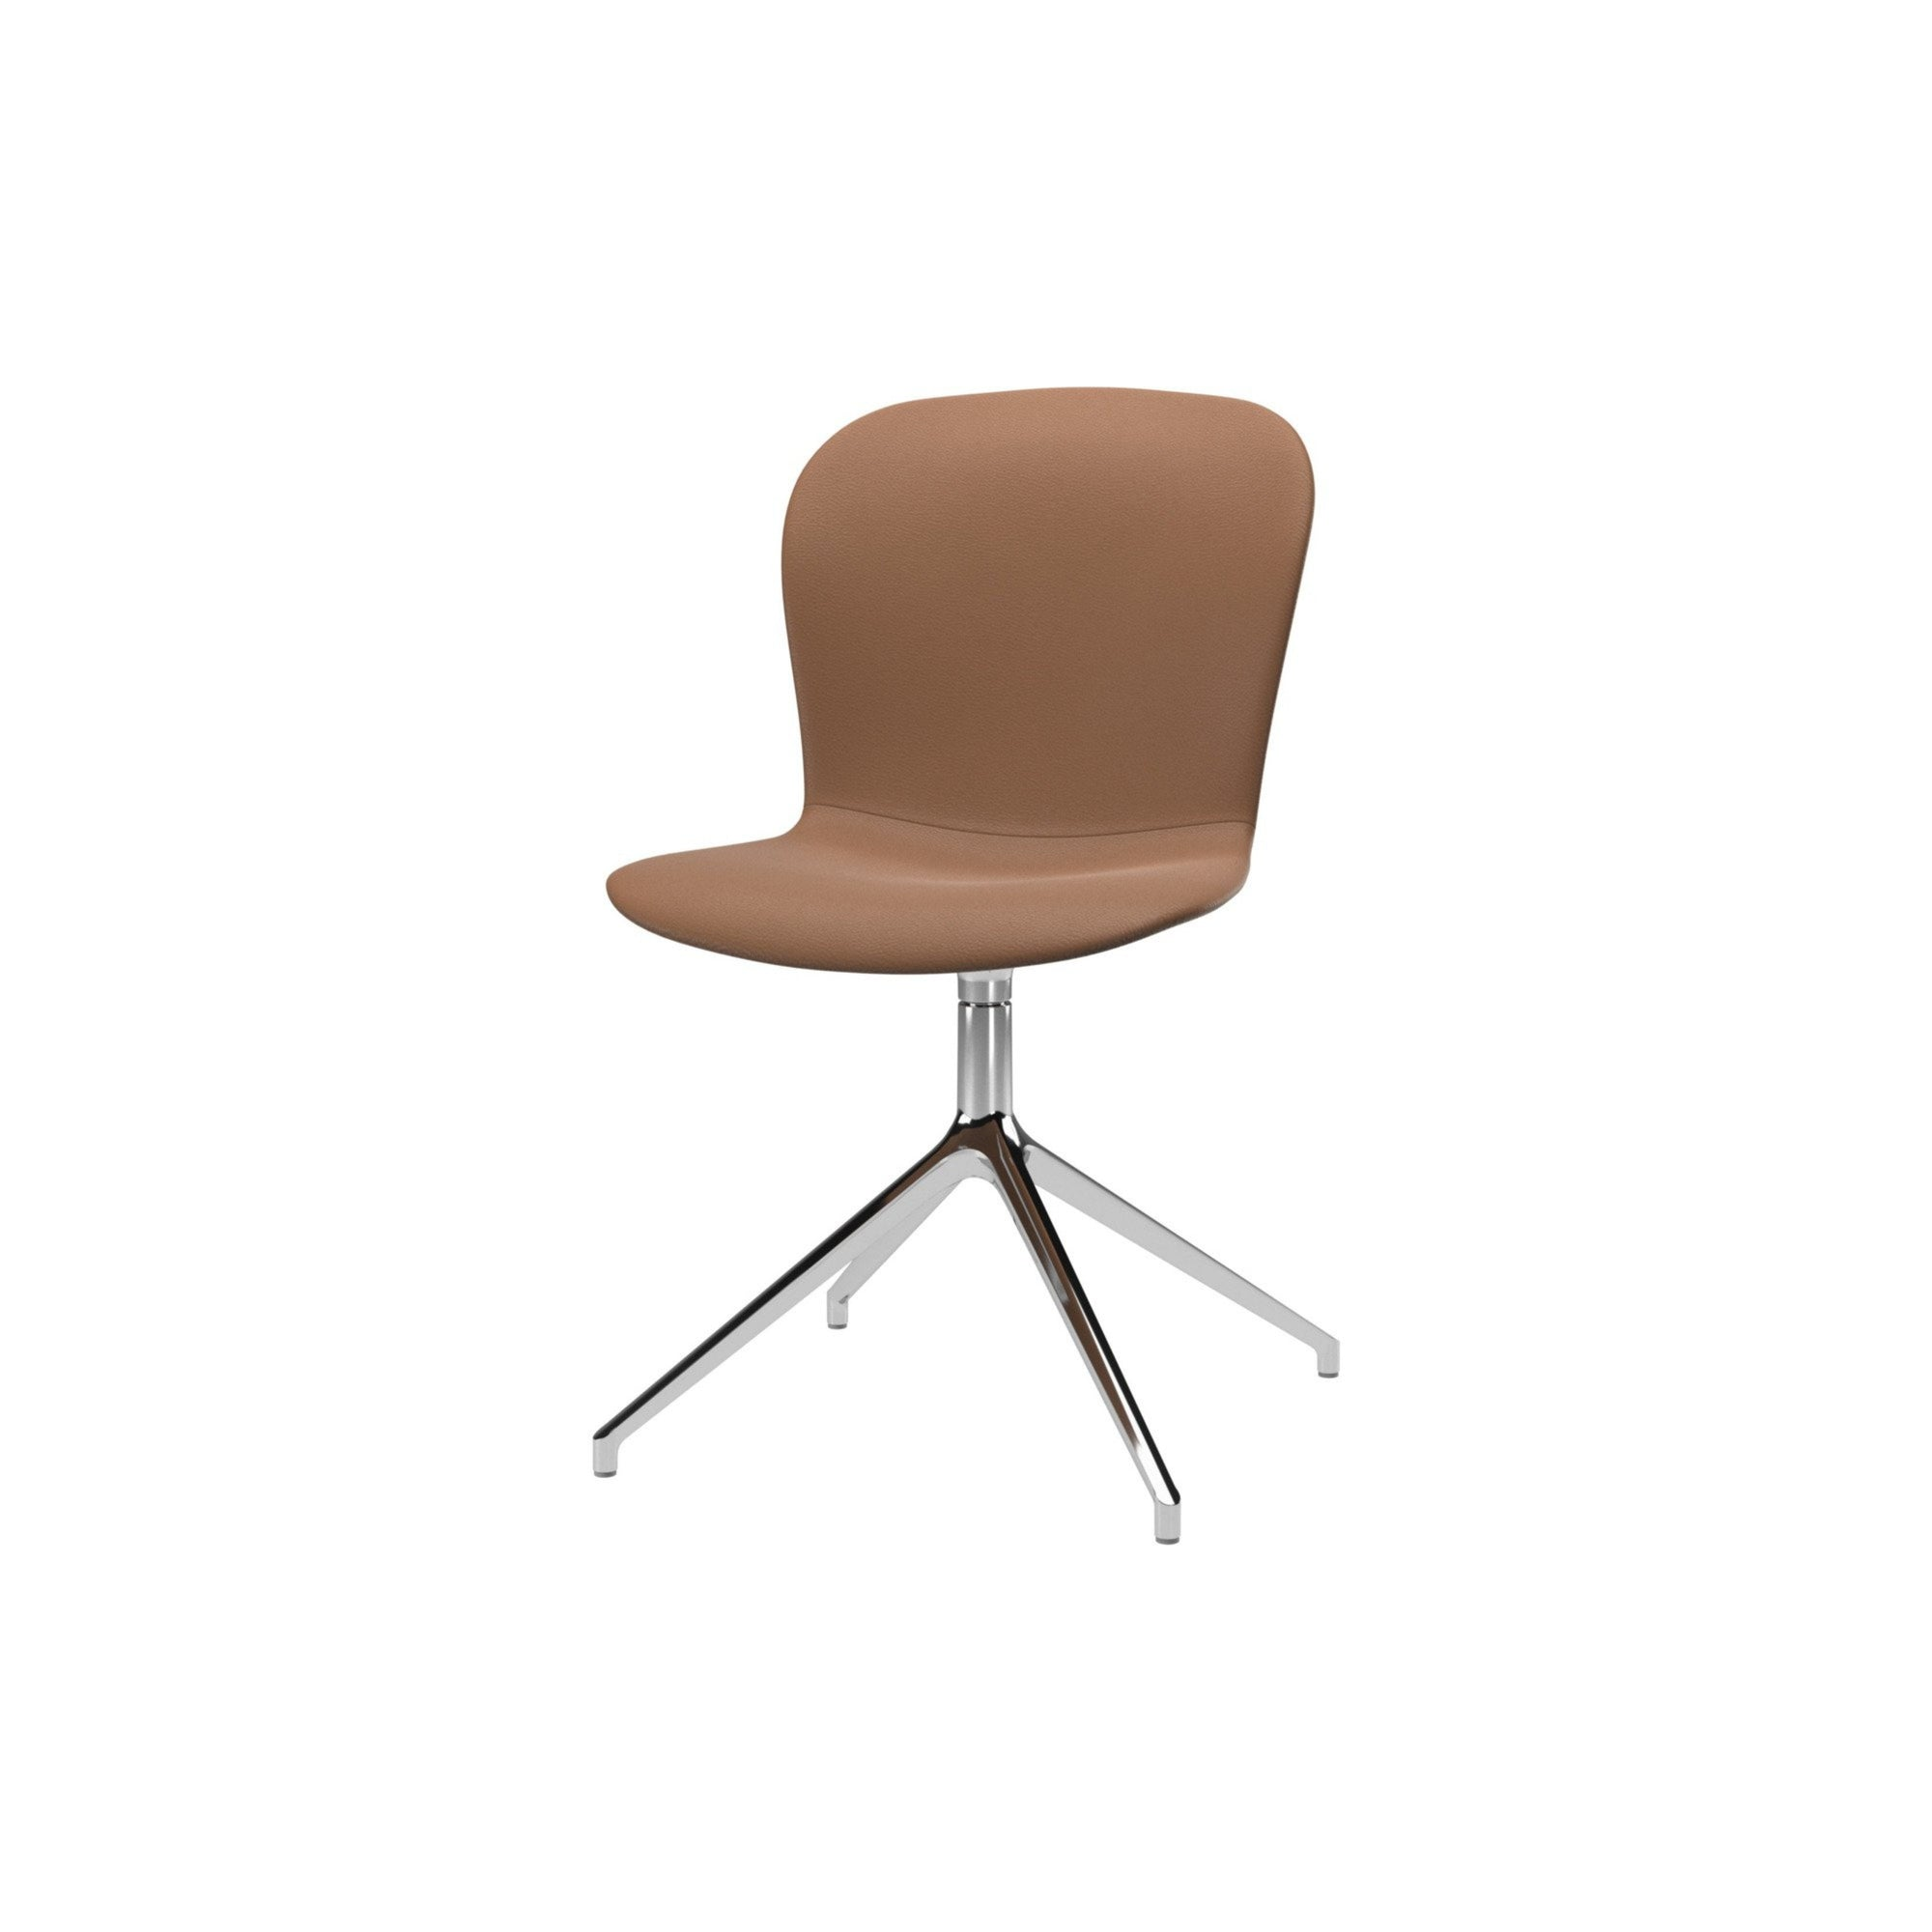 Adelaide Chair with swivel function - Caramel